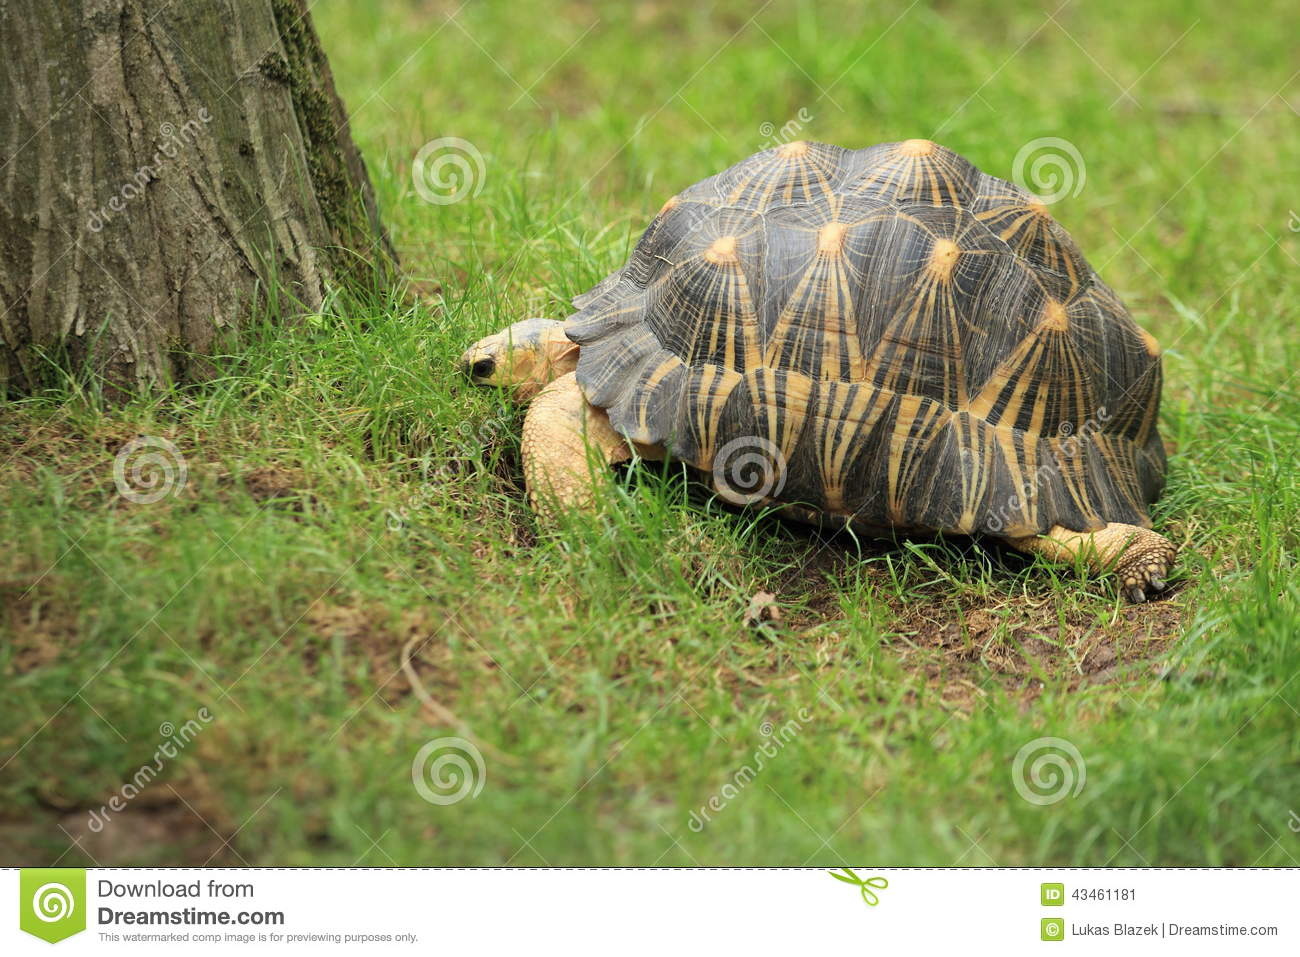 Radiated Tortoise clipart #1, Download drawings